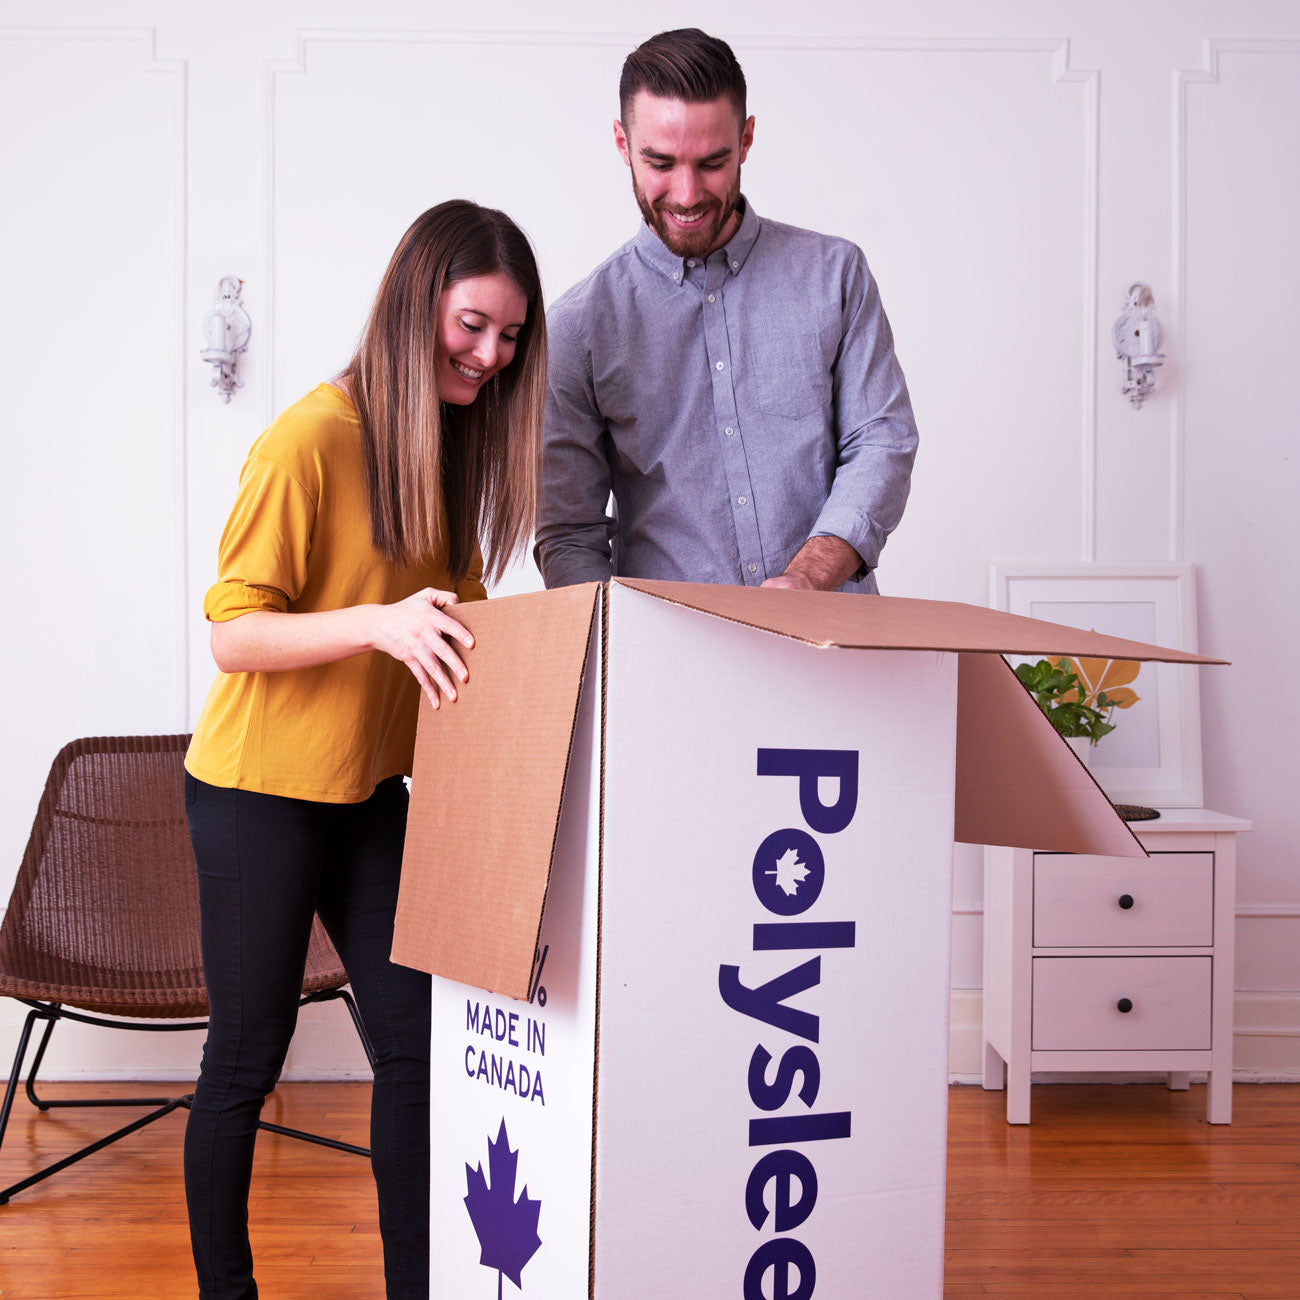 This couple is installing the Polysleep foam mattress in their room in Quebec